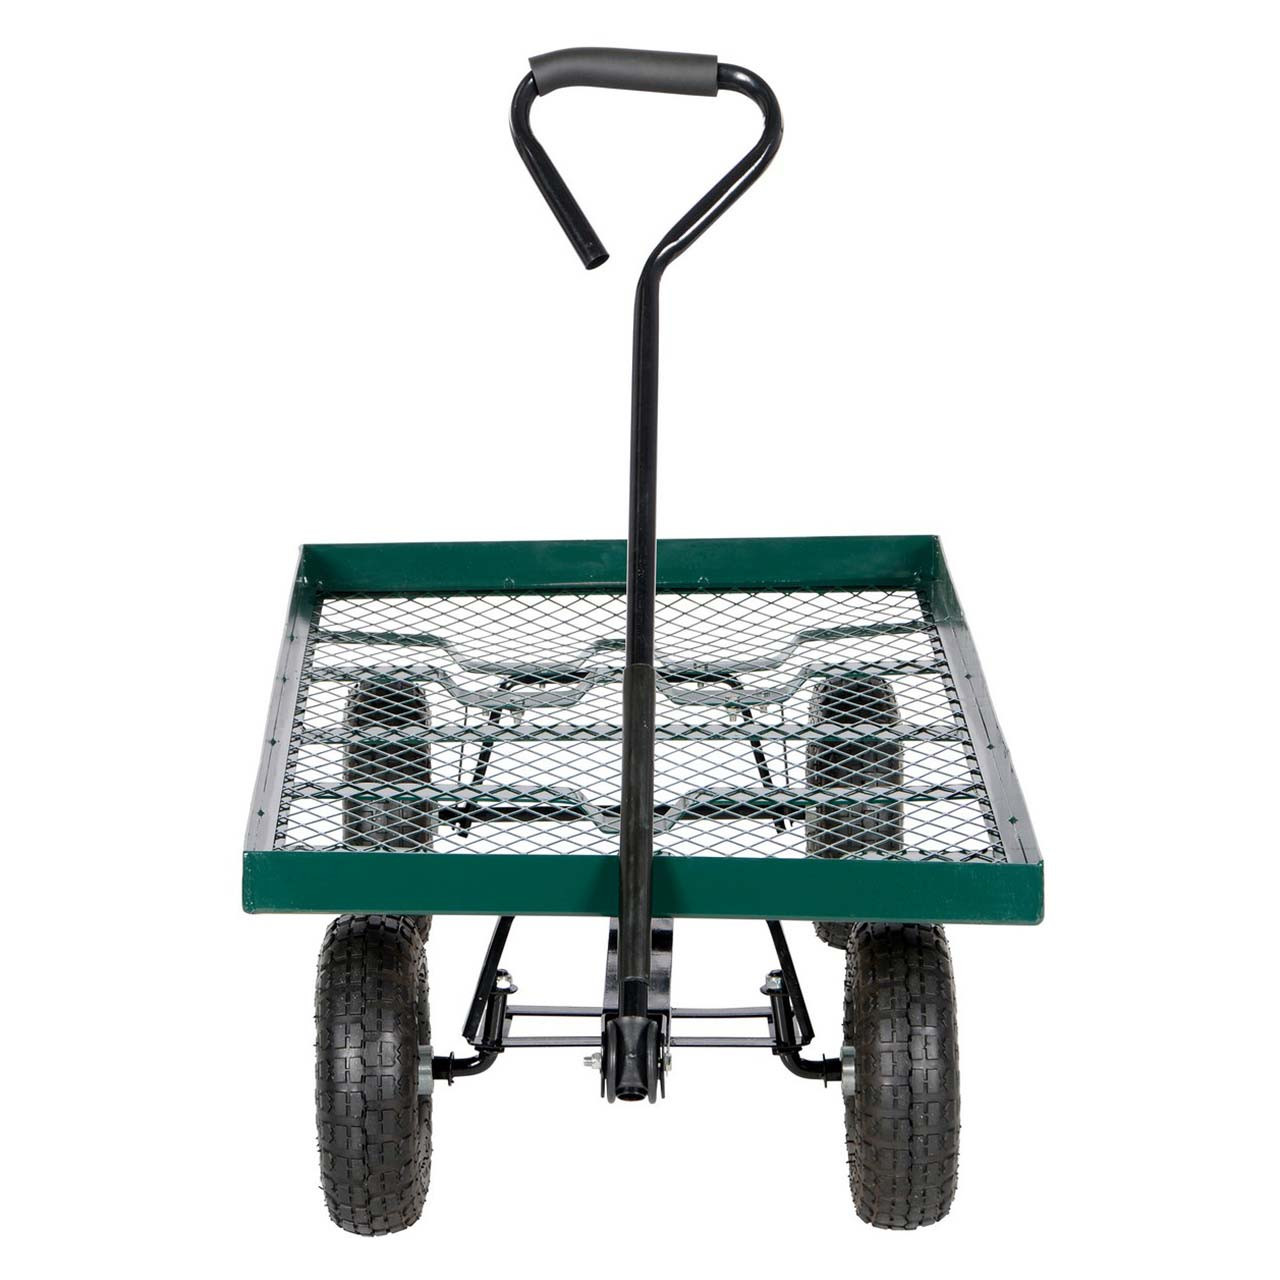 Front view of the Vestil LSC-2448-PT landscape cart